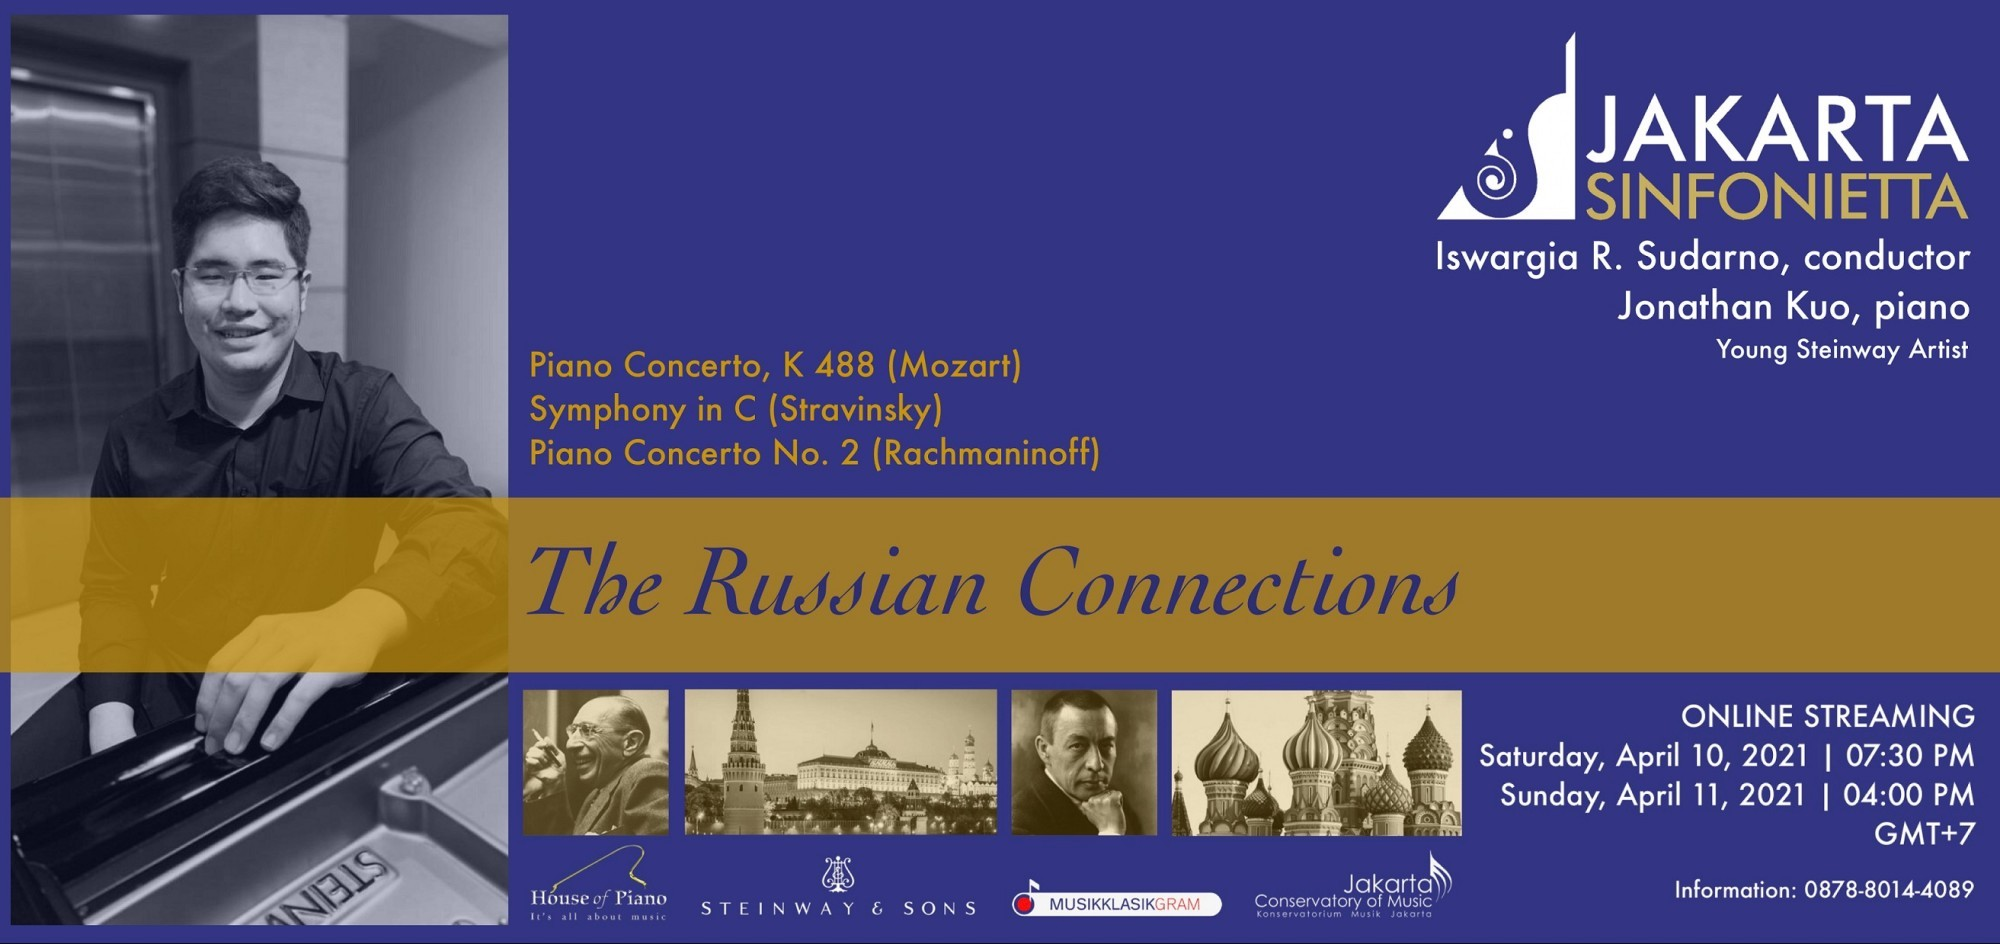 Jakarta Sinfonietta  Jonathan Kuo (Young Steinway Artist) - The Russian Connections 10/04/21